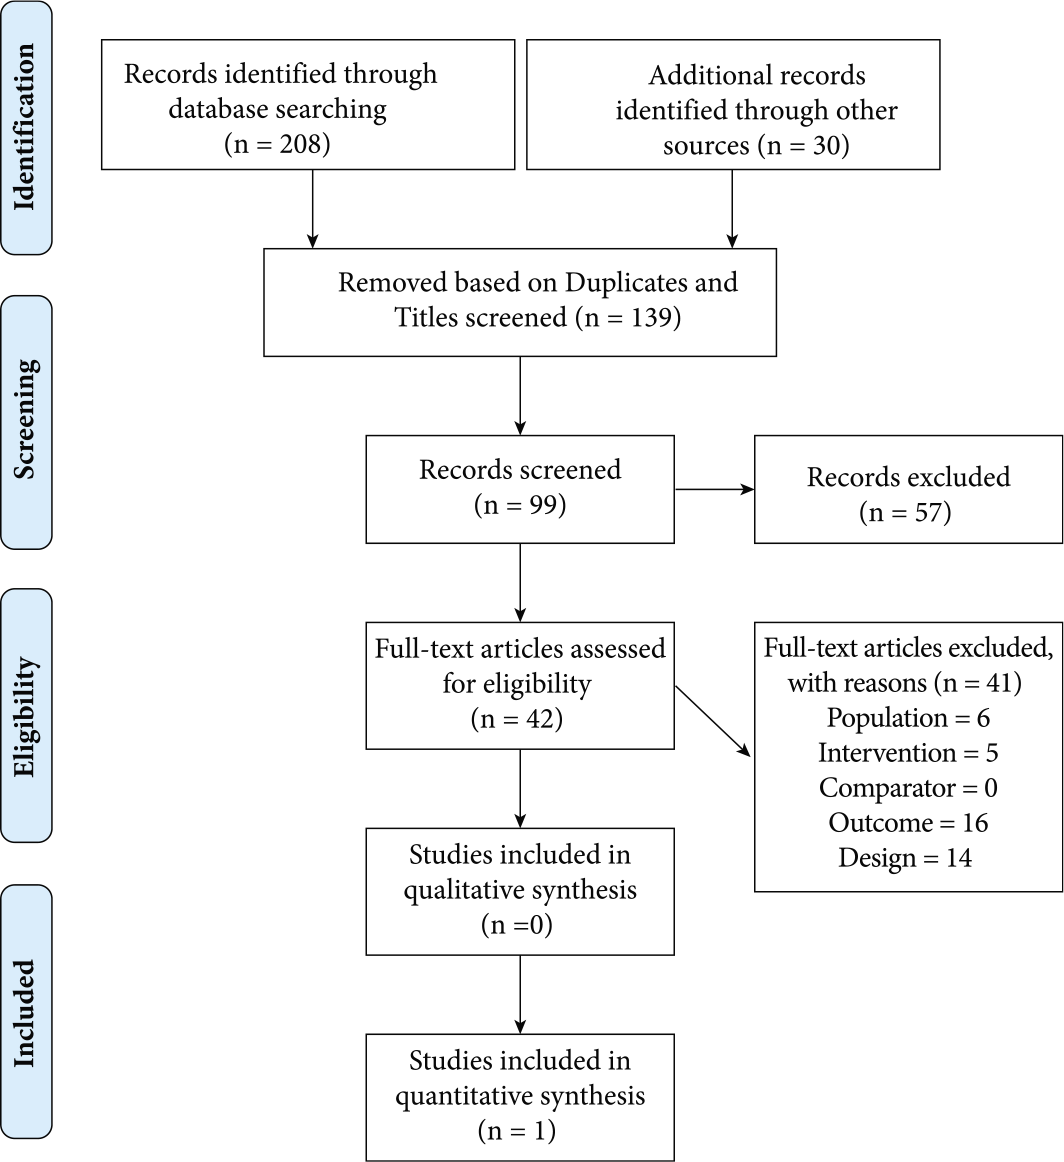 A new paper on digital stethoscopes for cardiopulmonary assessments